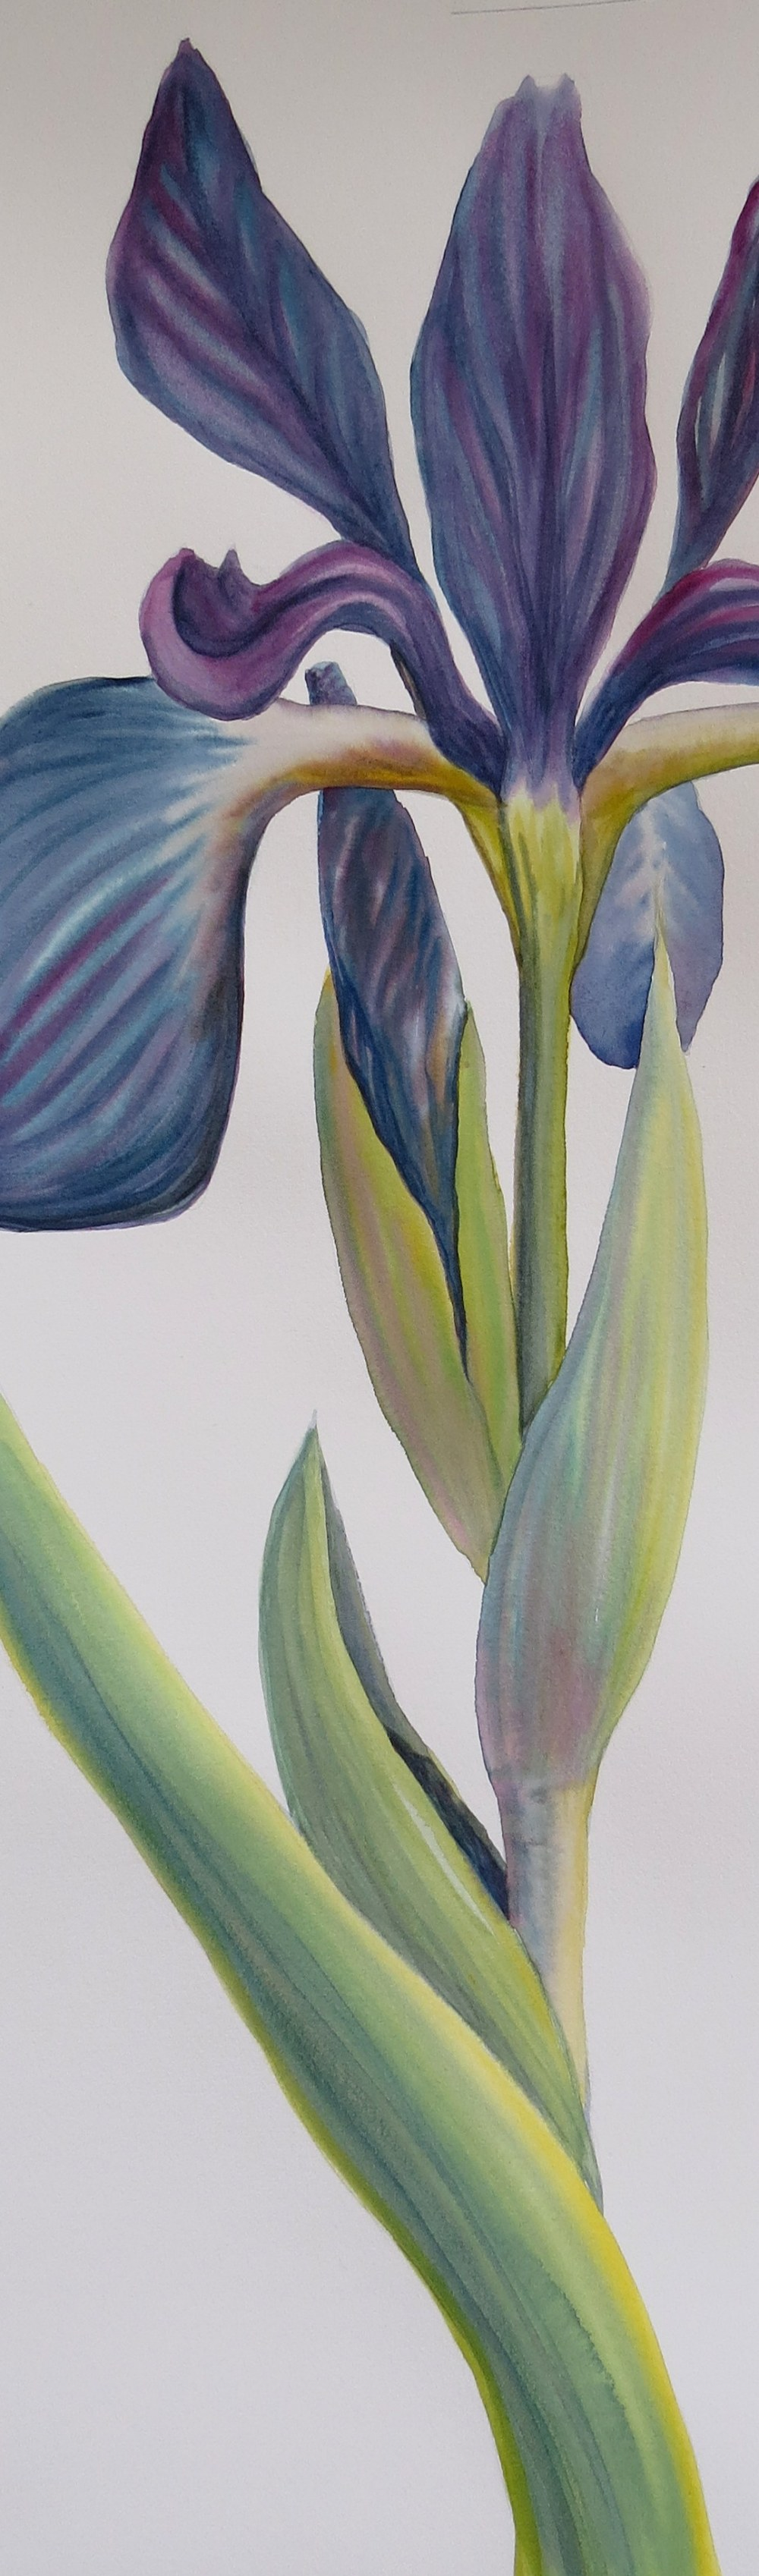 Spring Iris – Image © Susan Bartel. All Rights Reserved.